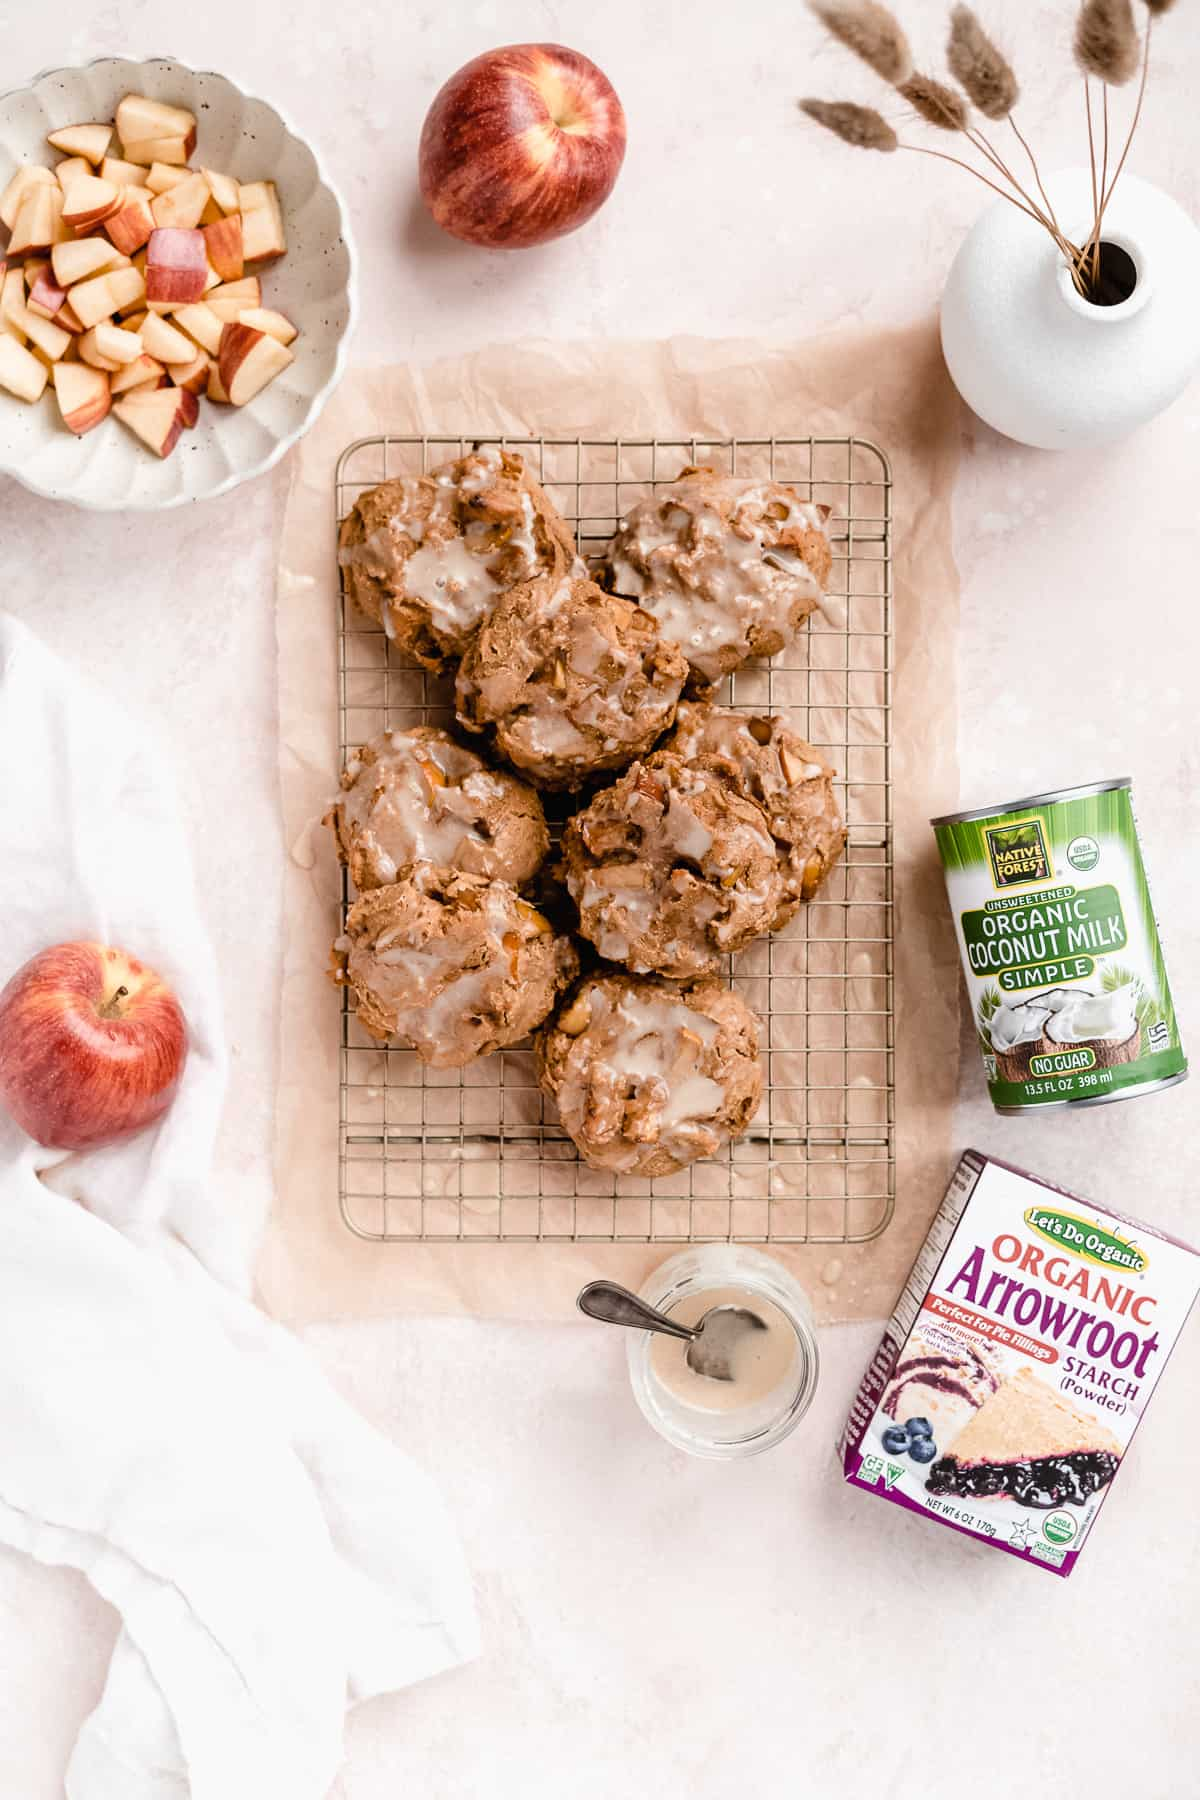 Overhead photo of Vegan Baked Apple Fritters with Maple Coconut Butter Glaze stacked into a mound sitting on top of a metal cooling rack.  A can of Organic Coconut Milk and box of Organic Arrowroot Starch are placed nearby together with several whole apples and a small bowl of apple chunks.